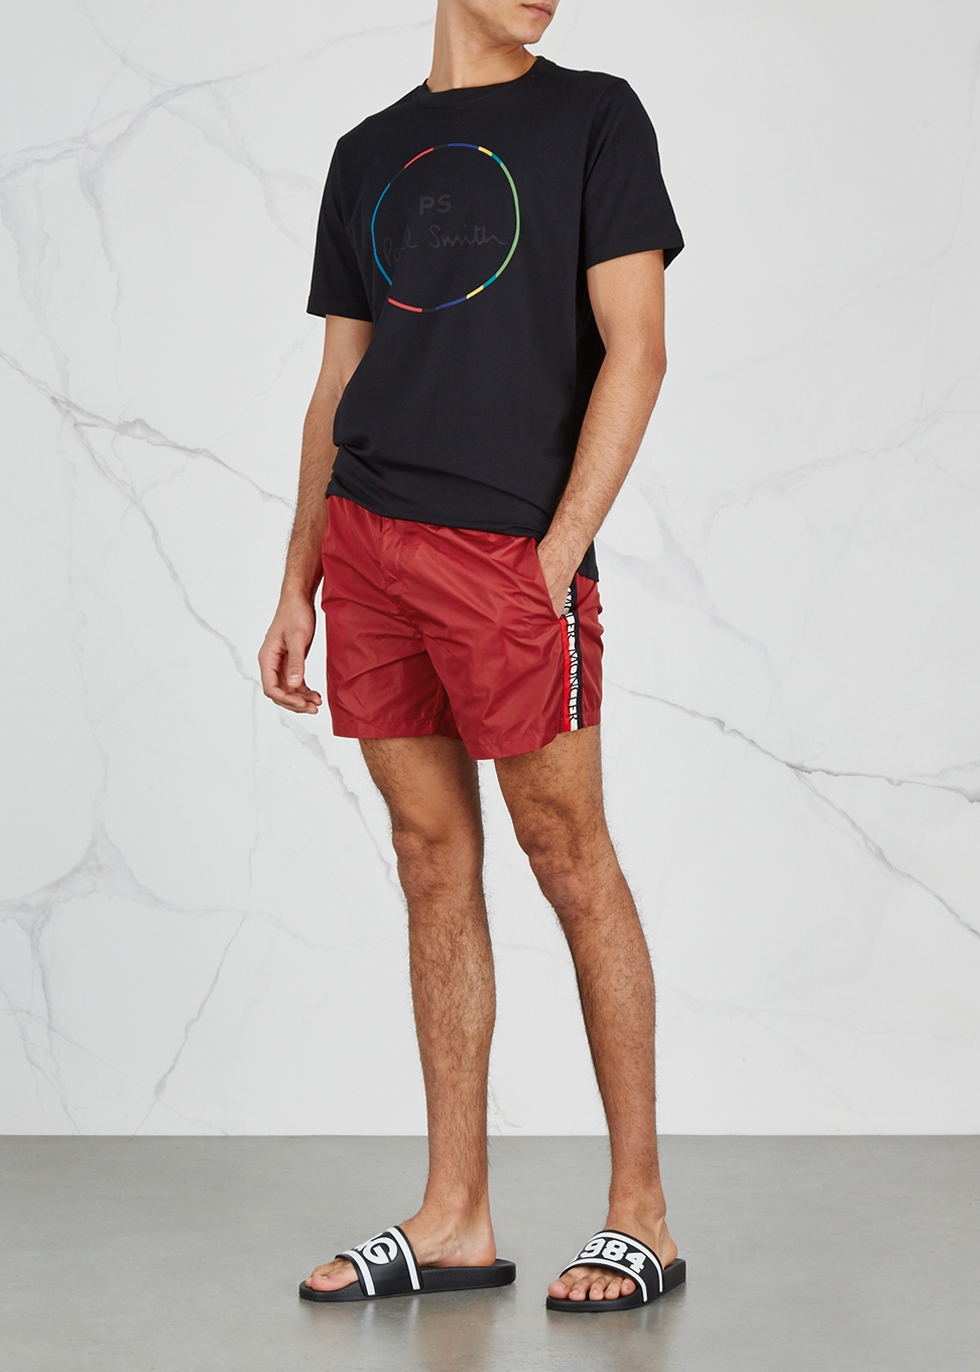 Dolmais red swim shorts Dolmais red swim shorts